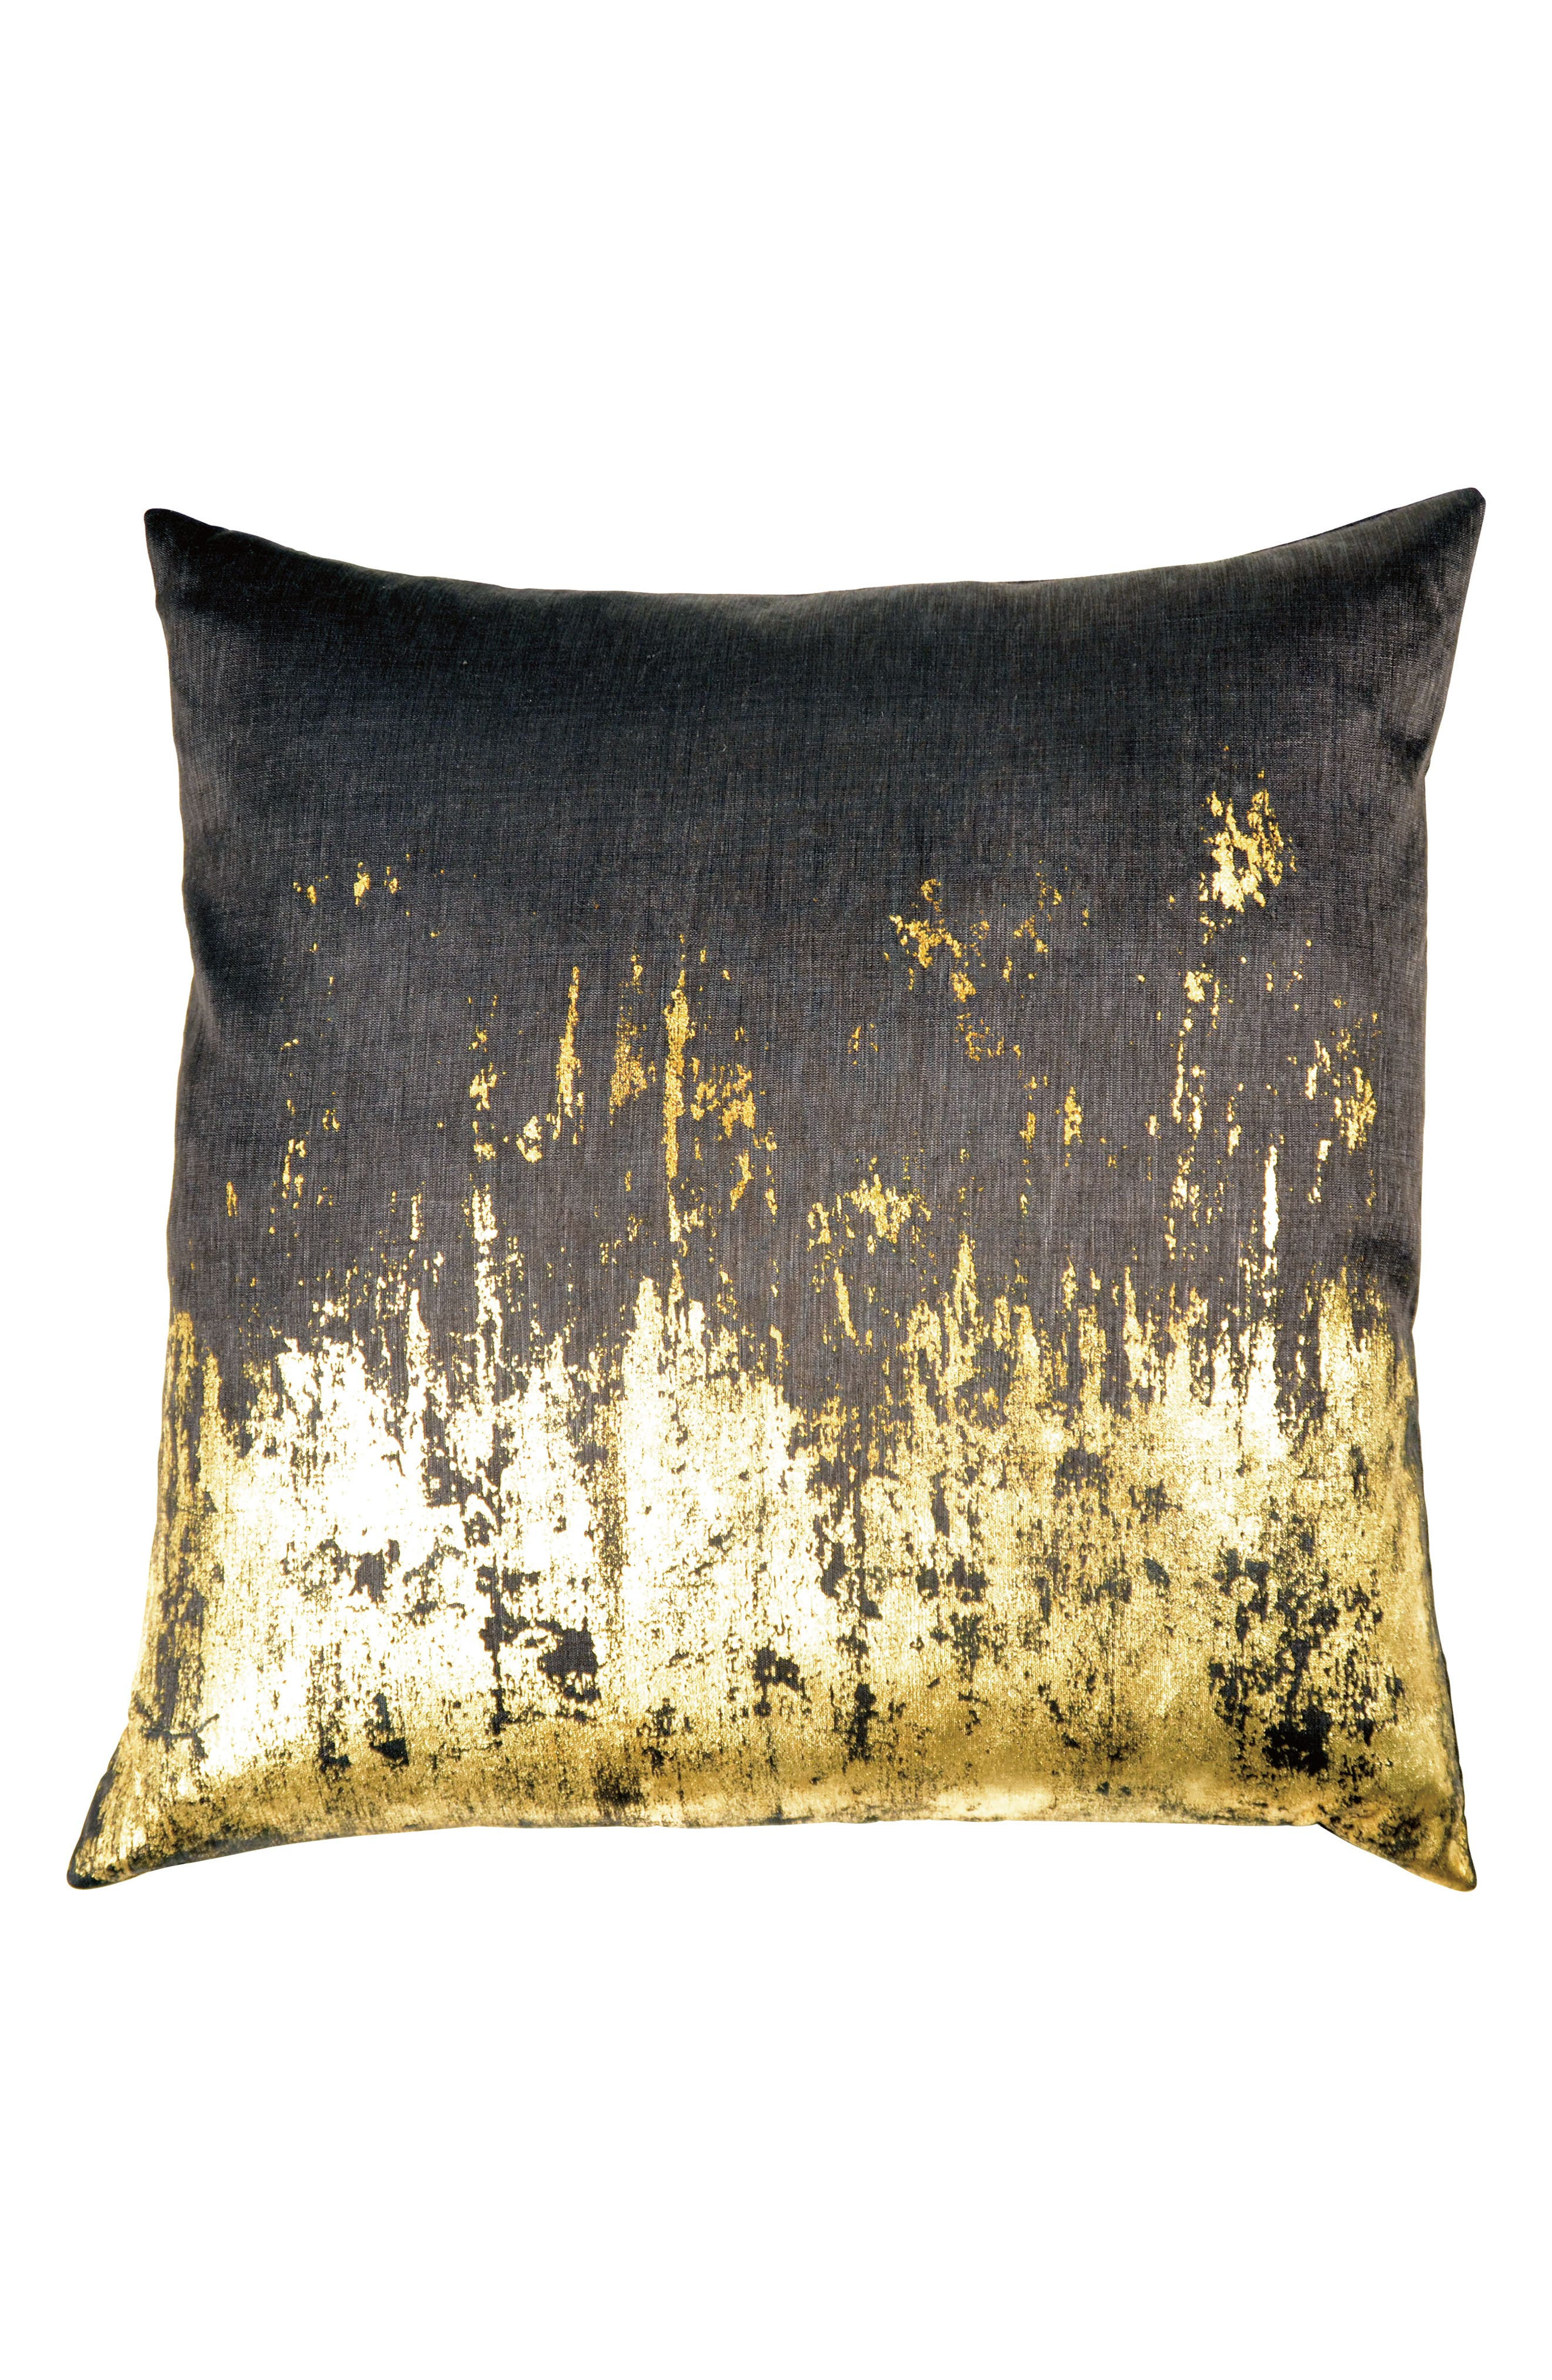 Distressed Metallic Accent Pillow,                         Main,                         color, Chocolate